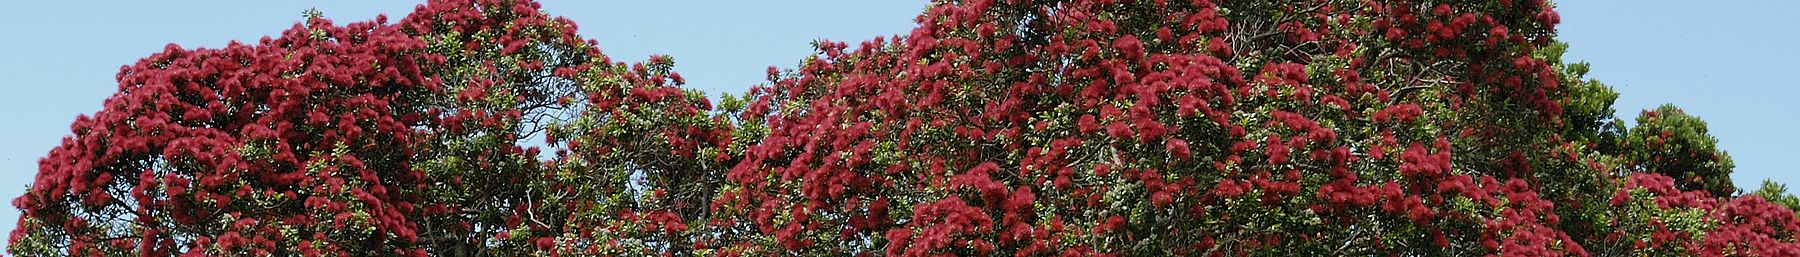 Pohutukawa (Metrosideros excelsa) in flower at Christmas (the southern summer)